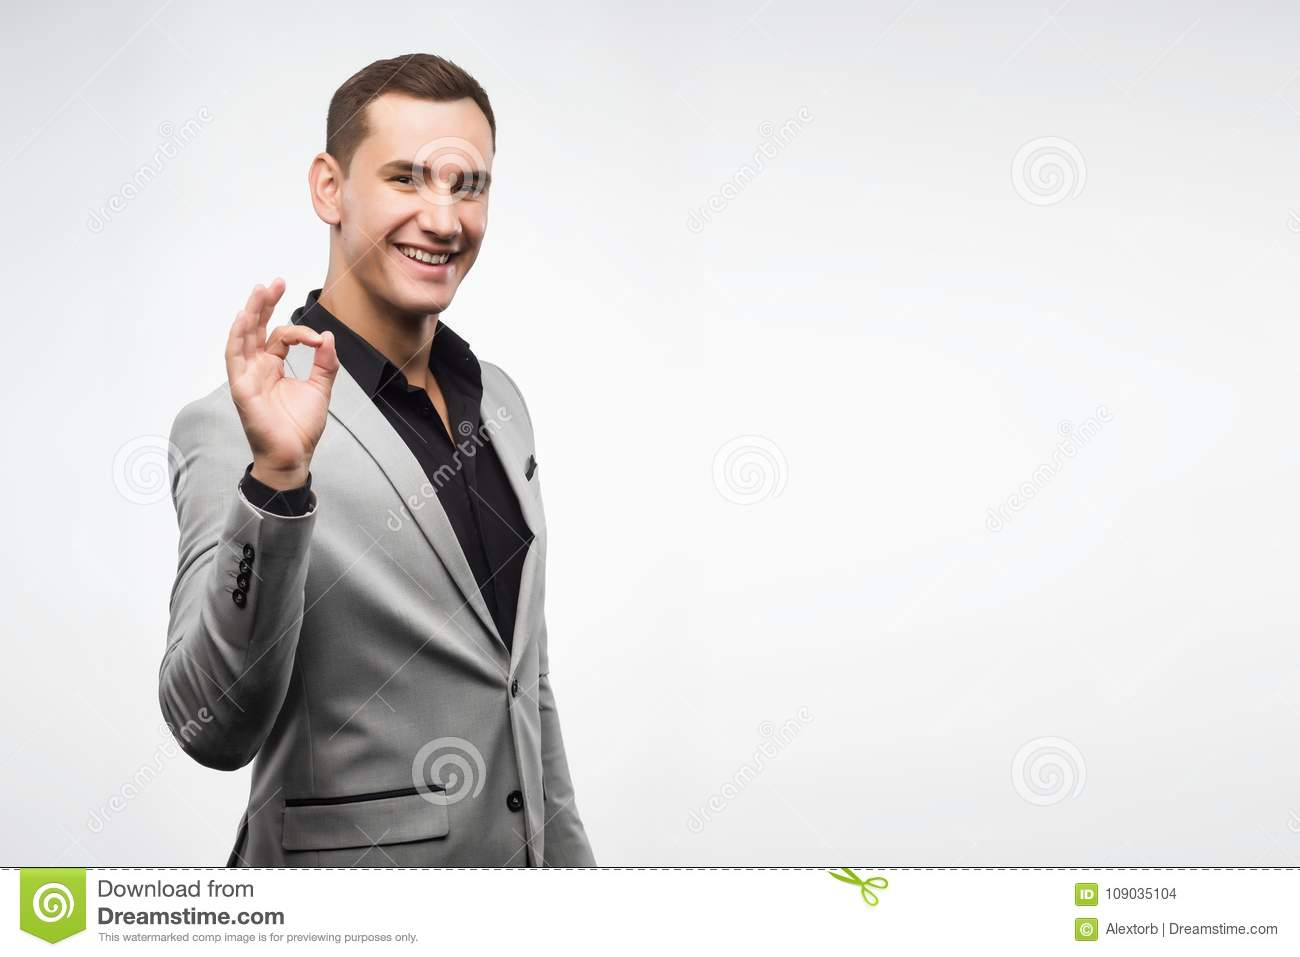 A young man wearing a gray suit shows a sign ok.